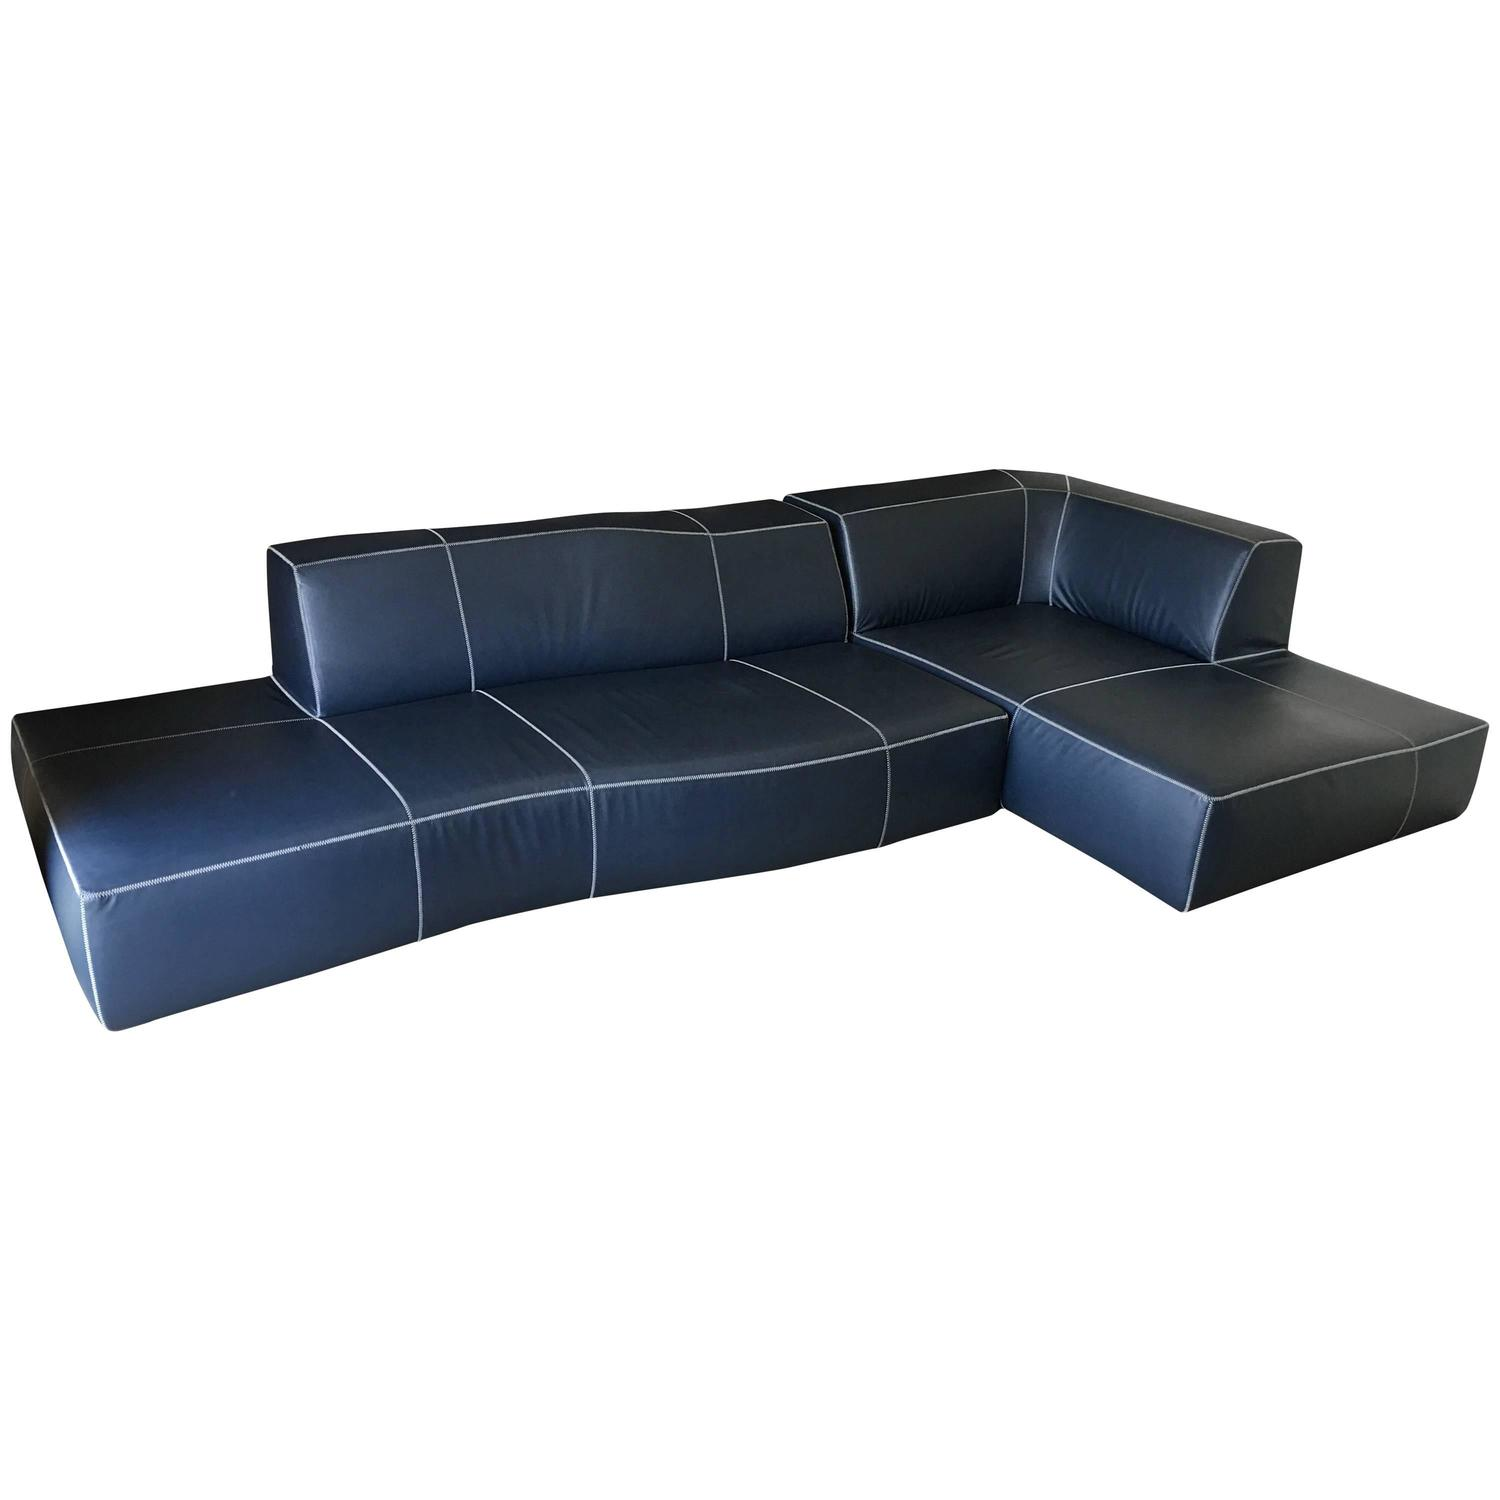 b b italia modular bend sectional sofa at 1stdibs. Black Bedroom Furniture Sets. Home Design Ideas